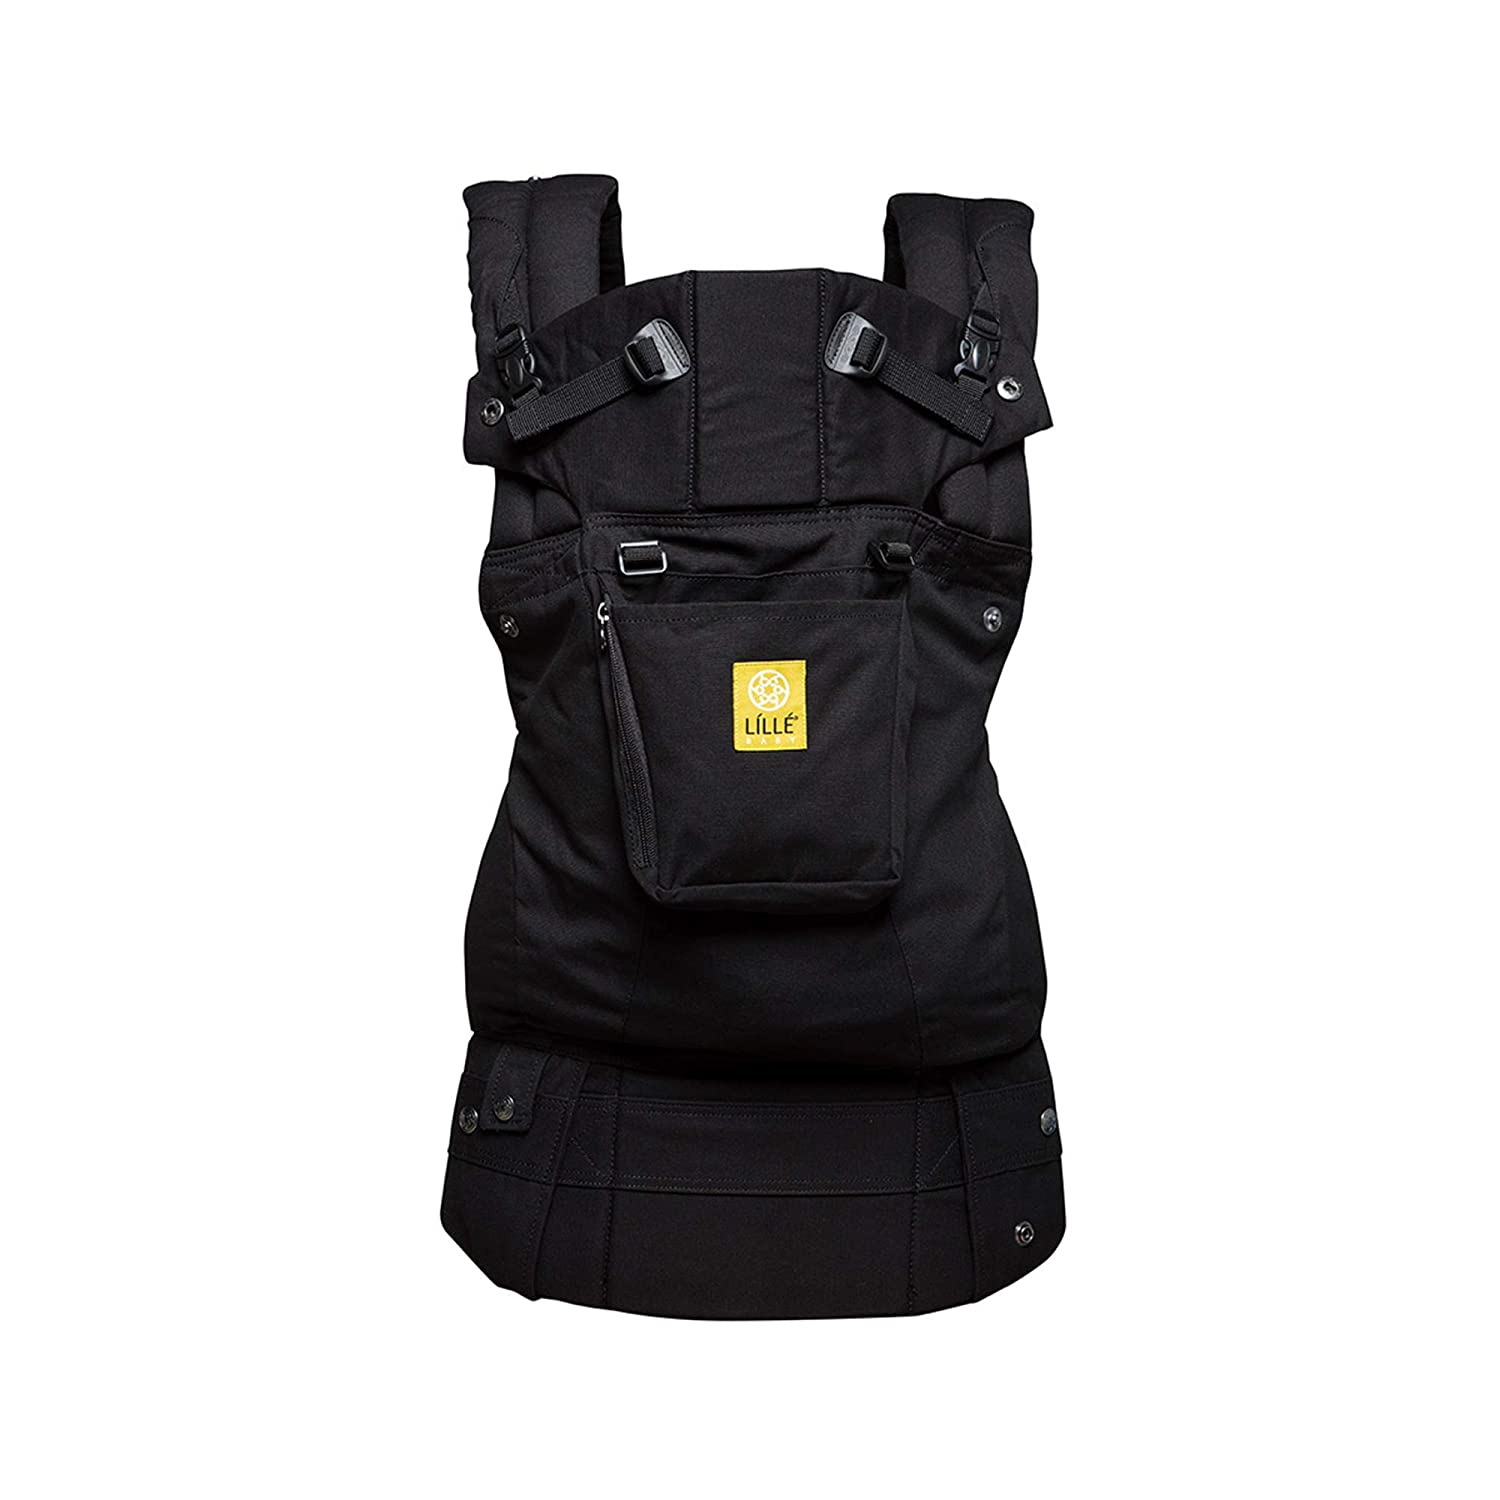 1afc72150d0 Amazon.com   LÍLLÉbaby The Complete Original SIX-Position